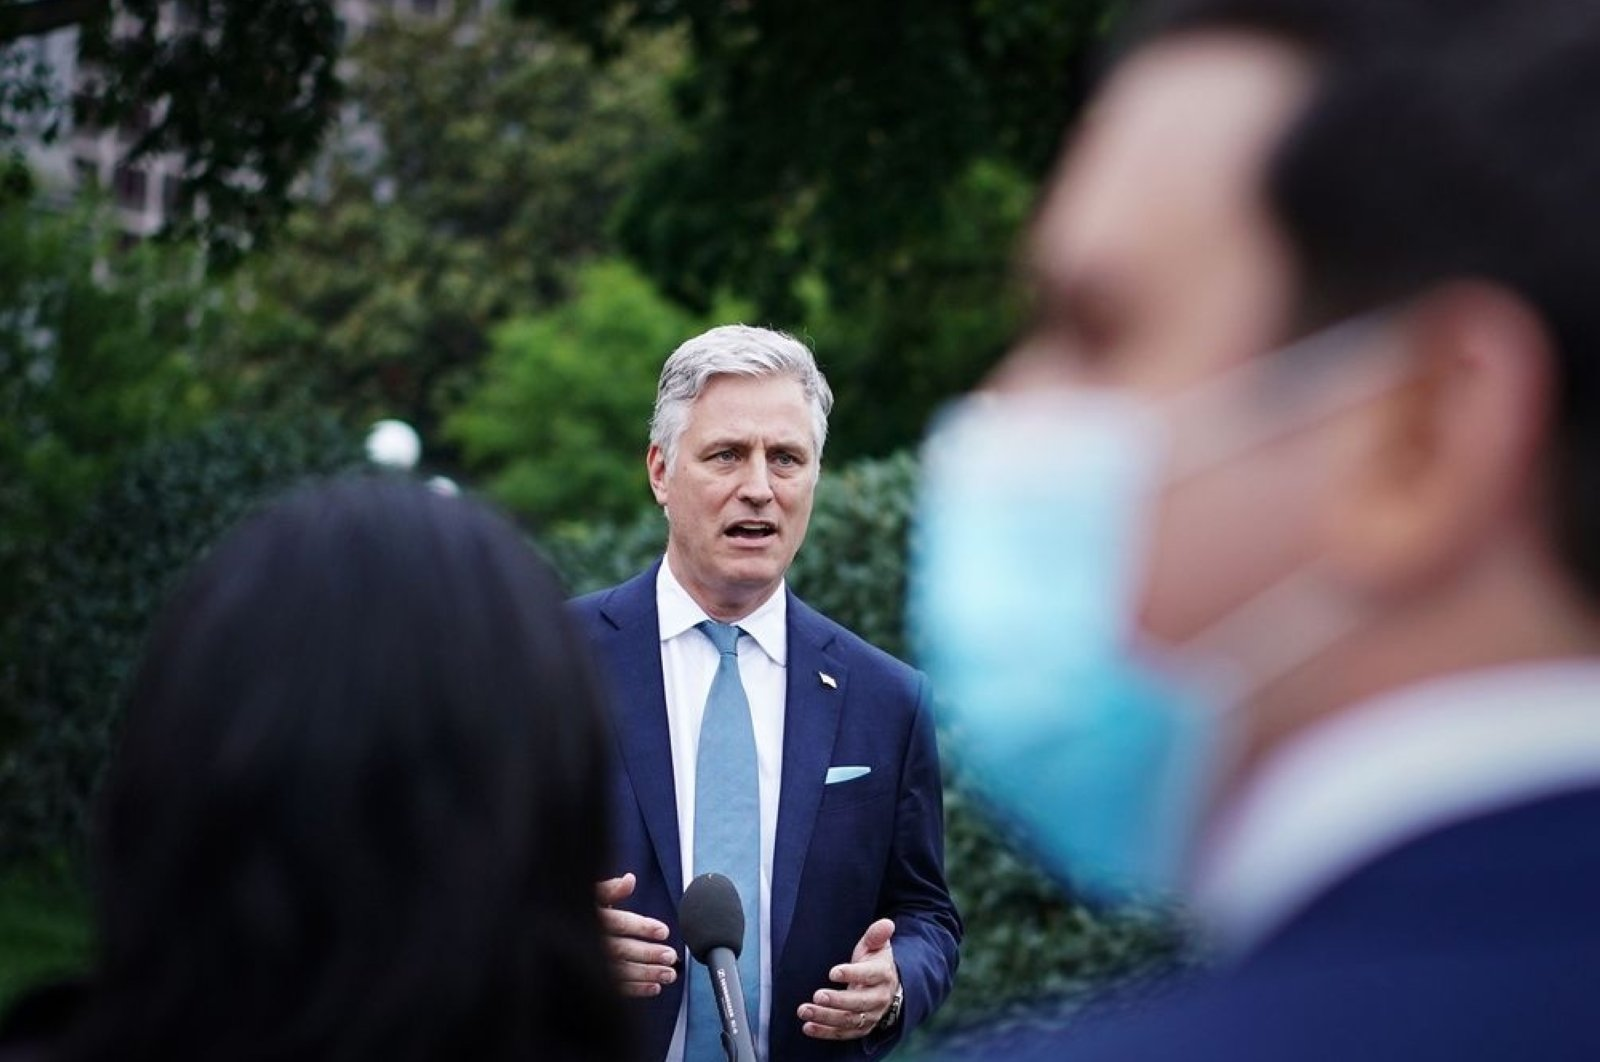 Robert O'Brien speaks to reporters outside of the West Wing of the White House, Washington, D.C., May 21, 2020. (AFP Photo)